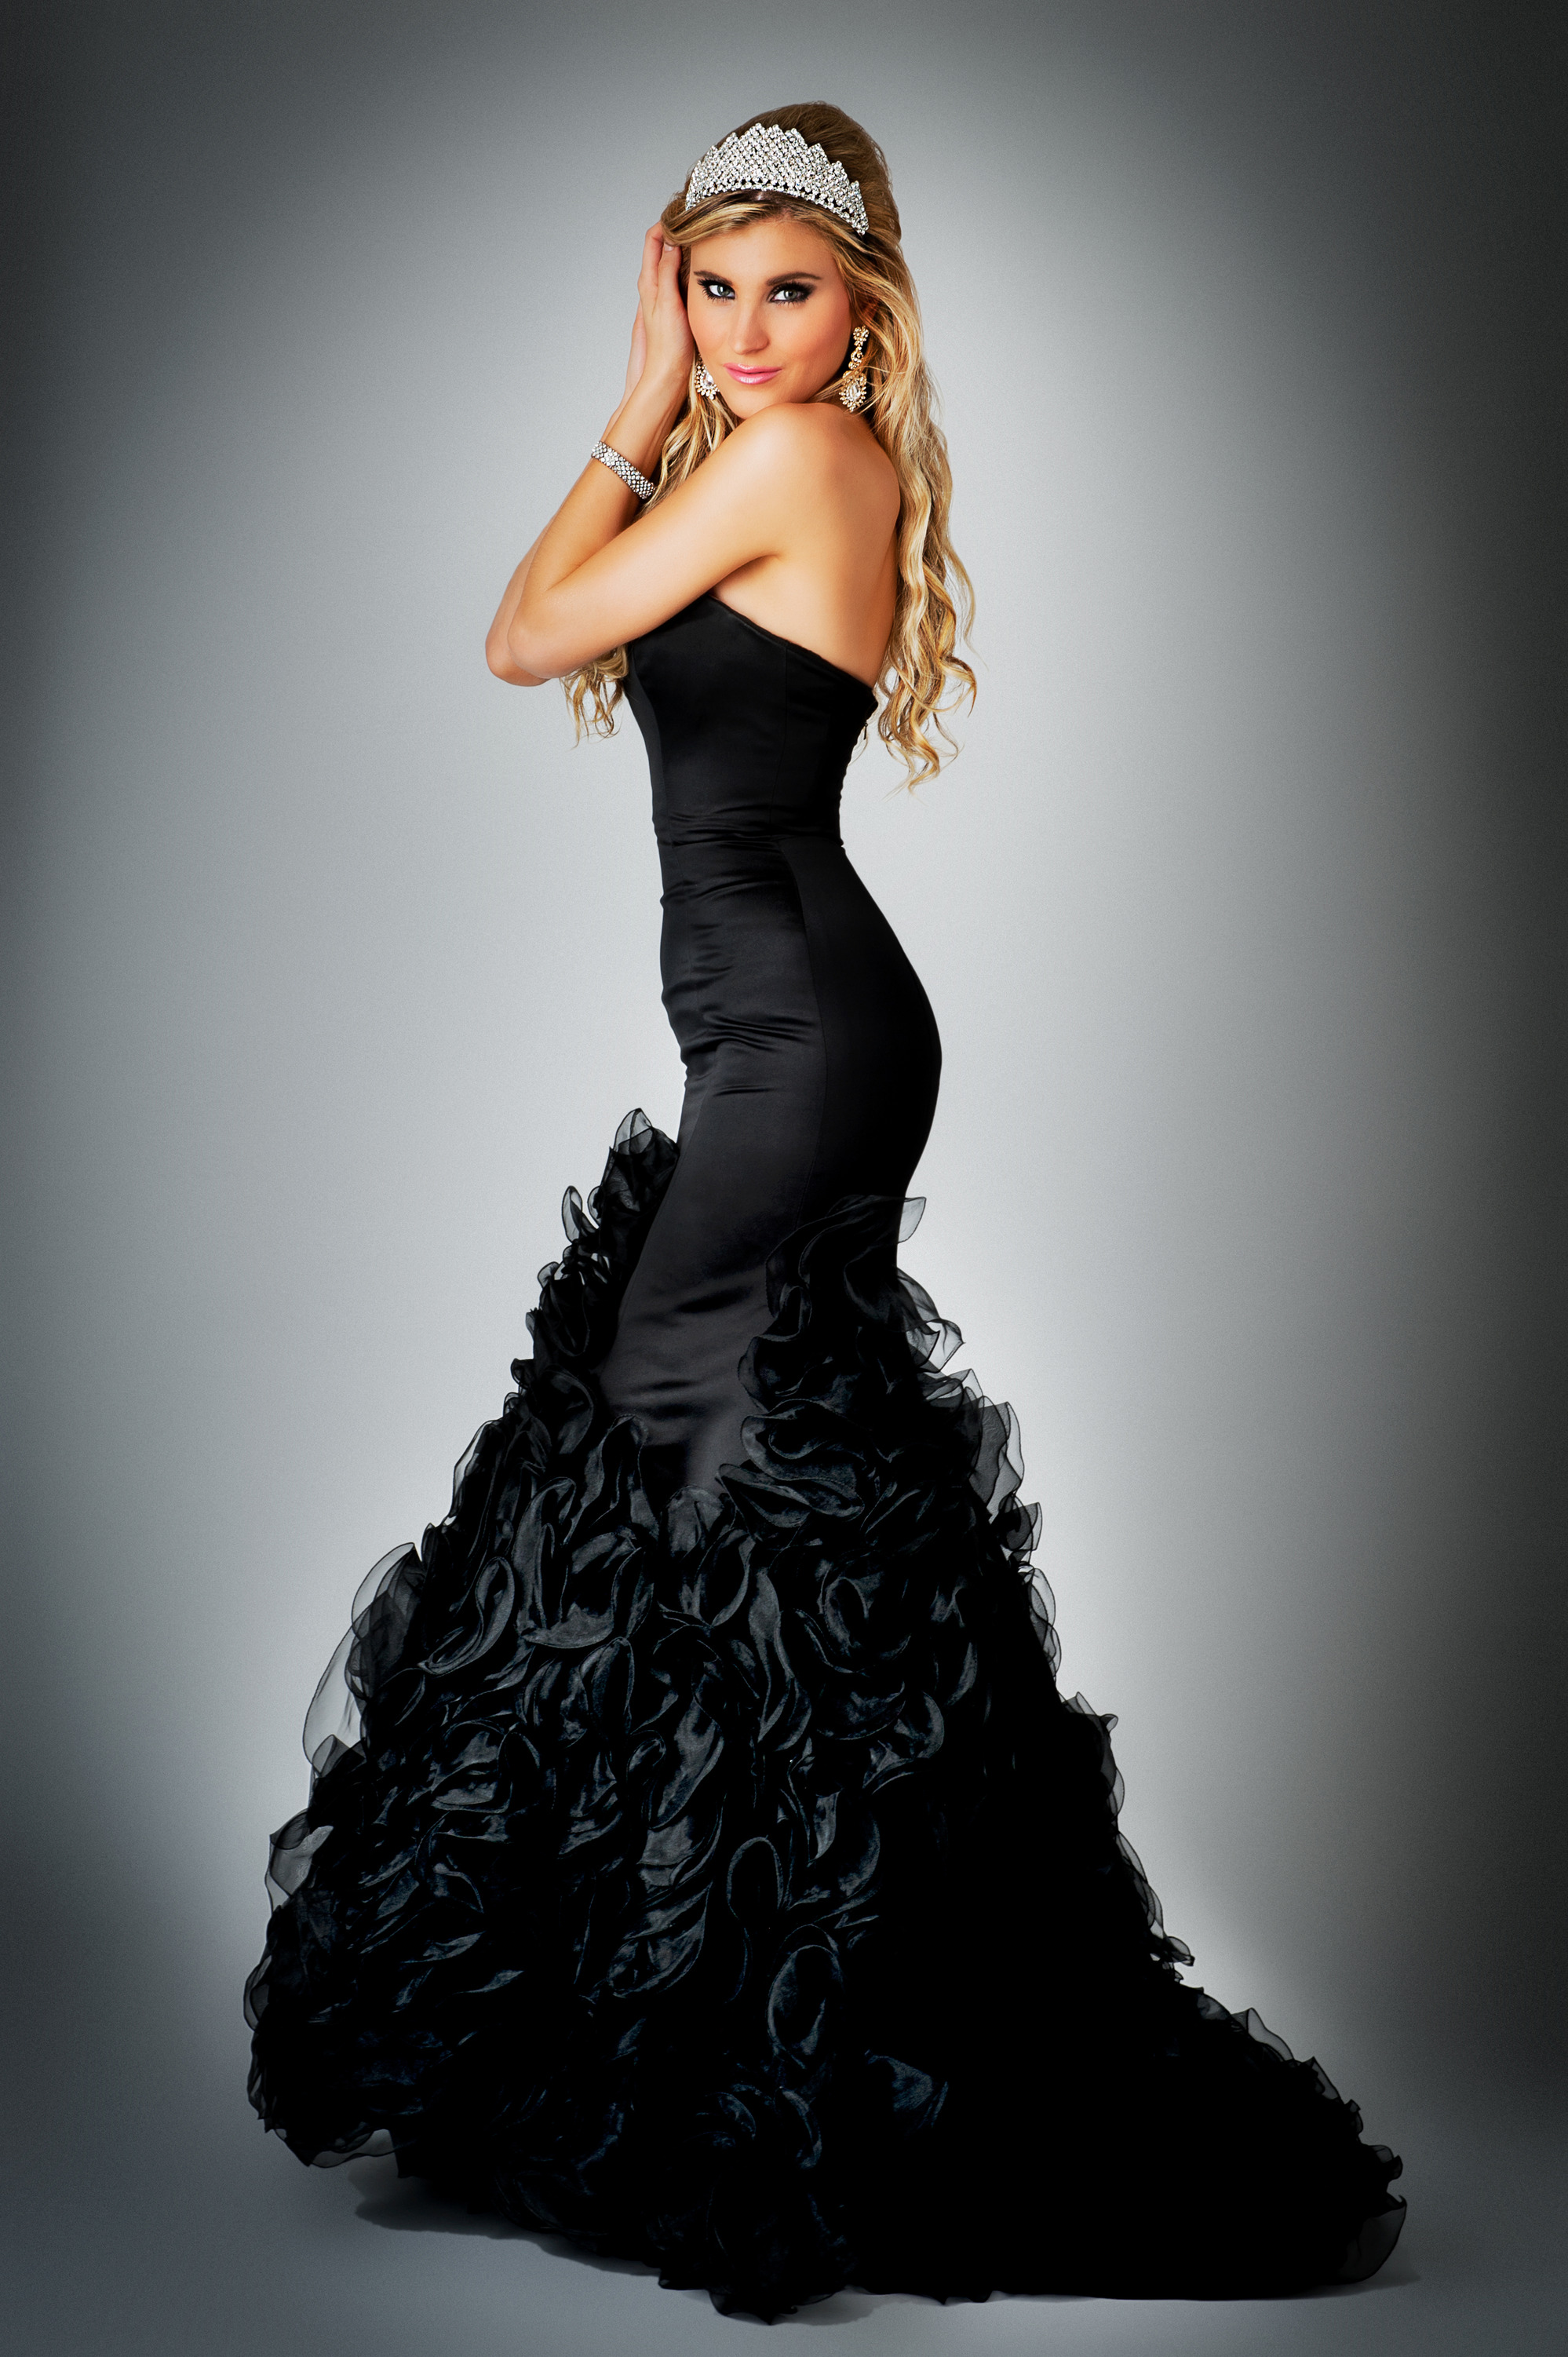 photodune-7021569-beauty-queen-in-ball-gown-dress-l